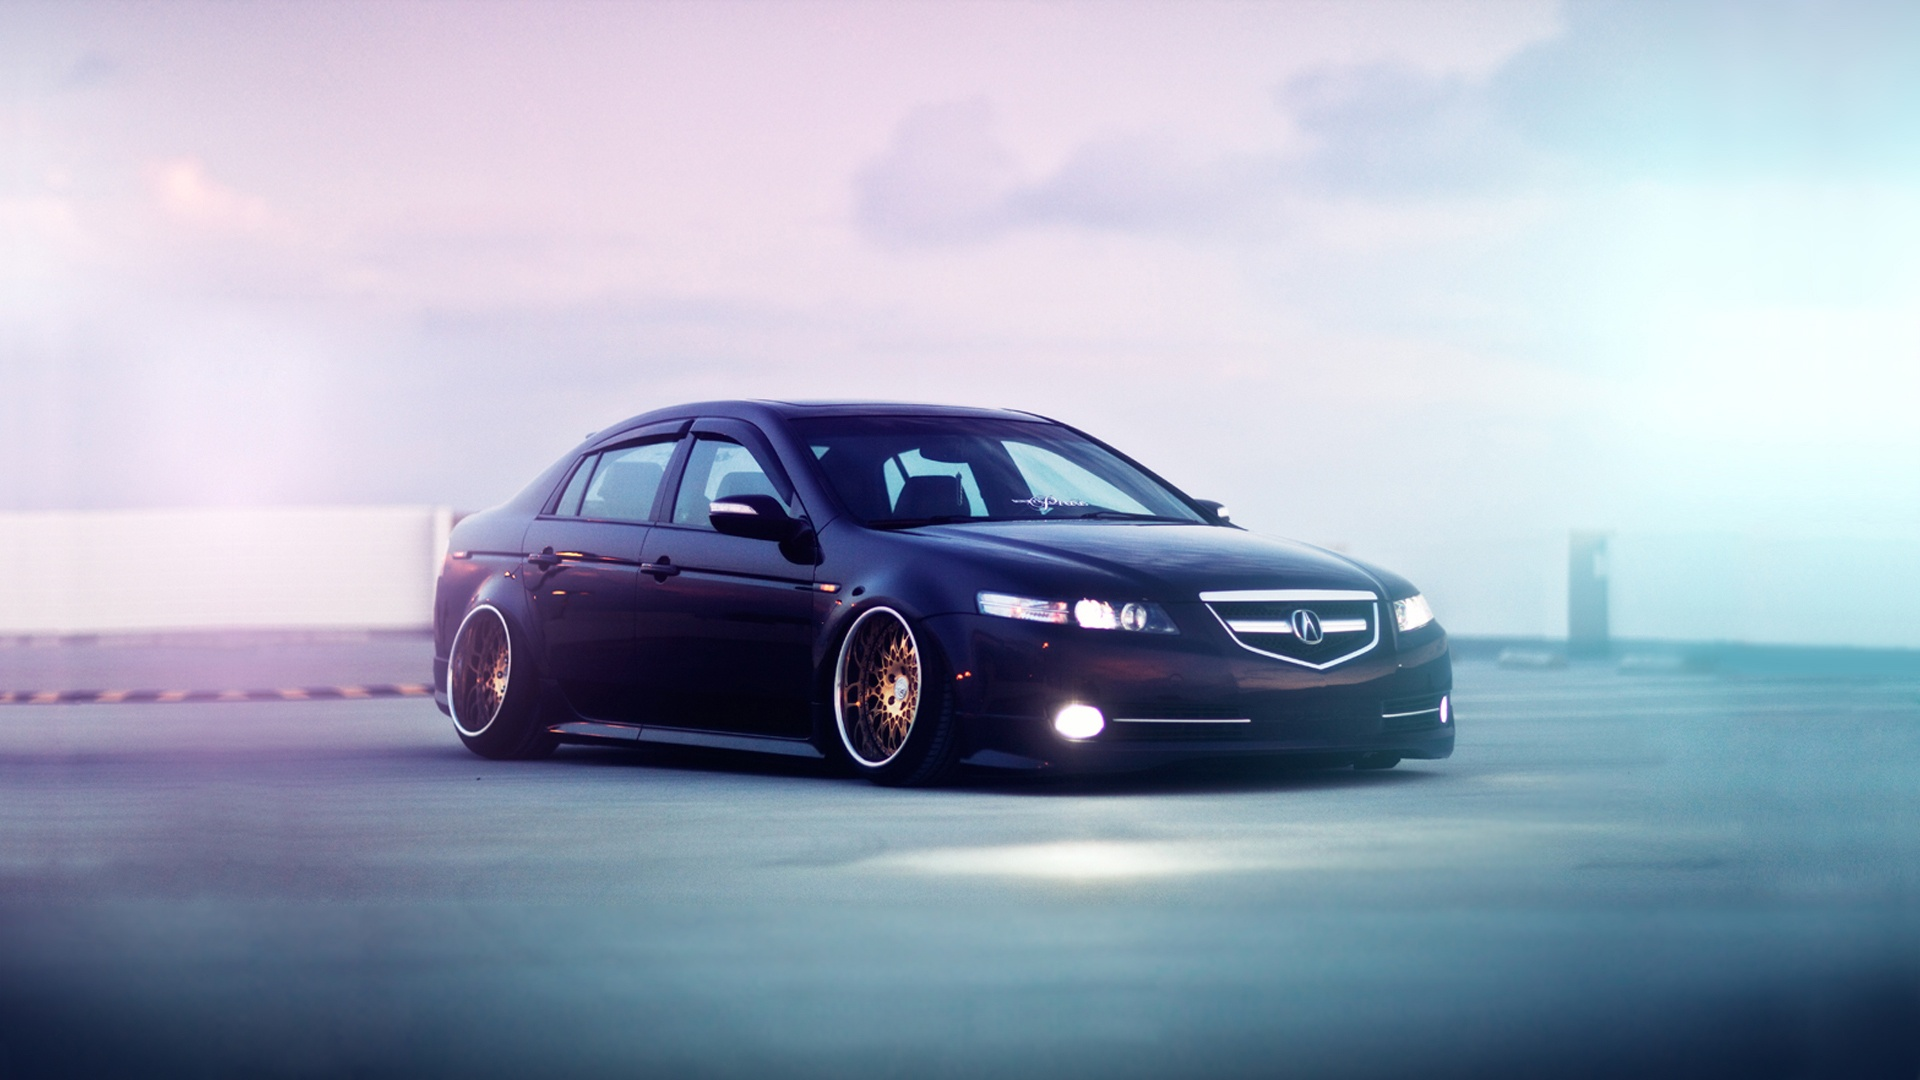 Destop Wallpaper Cars Acura Tl Stance Wallpapers 1920x1080 361352